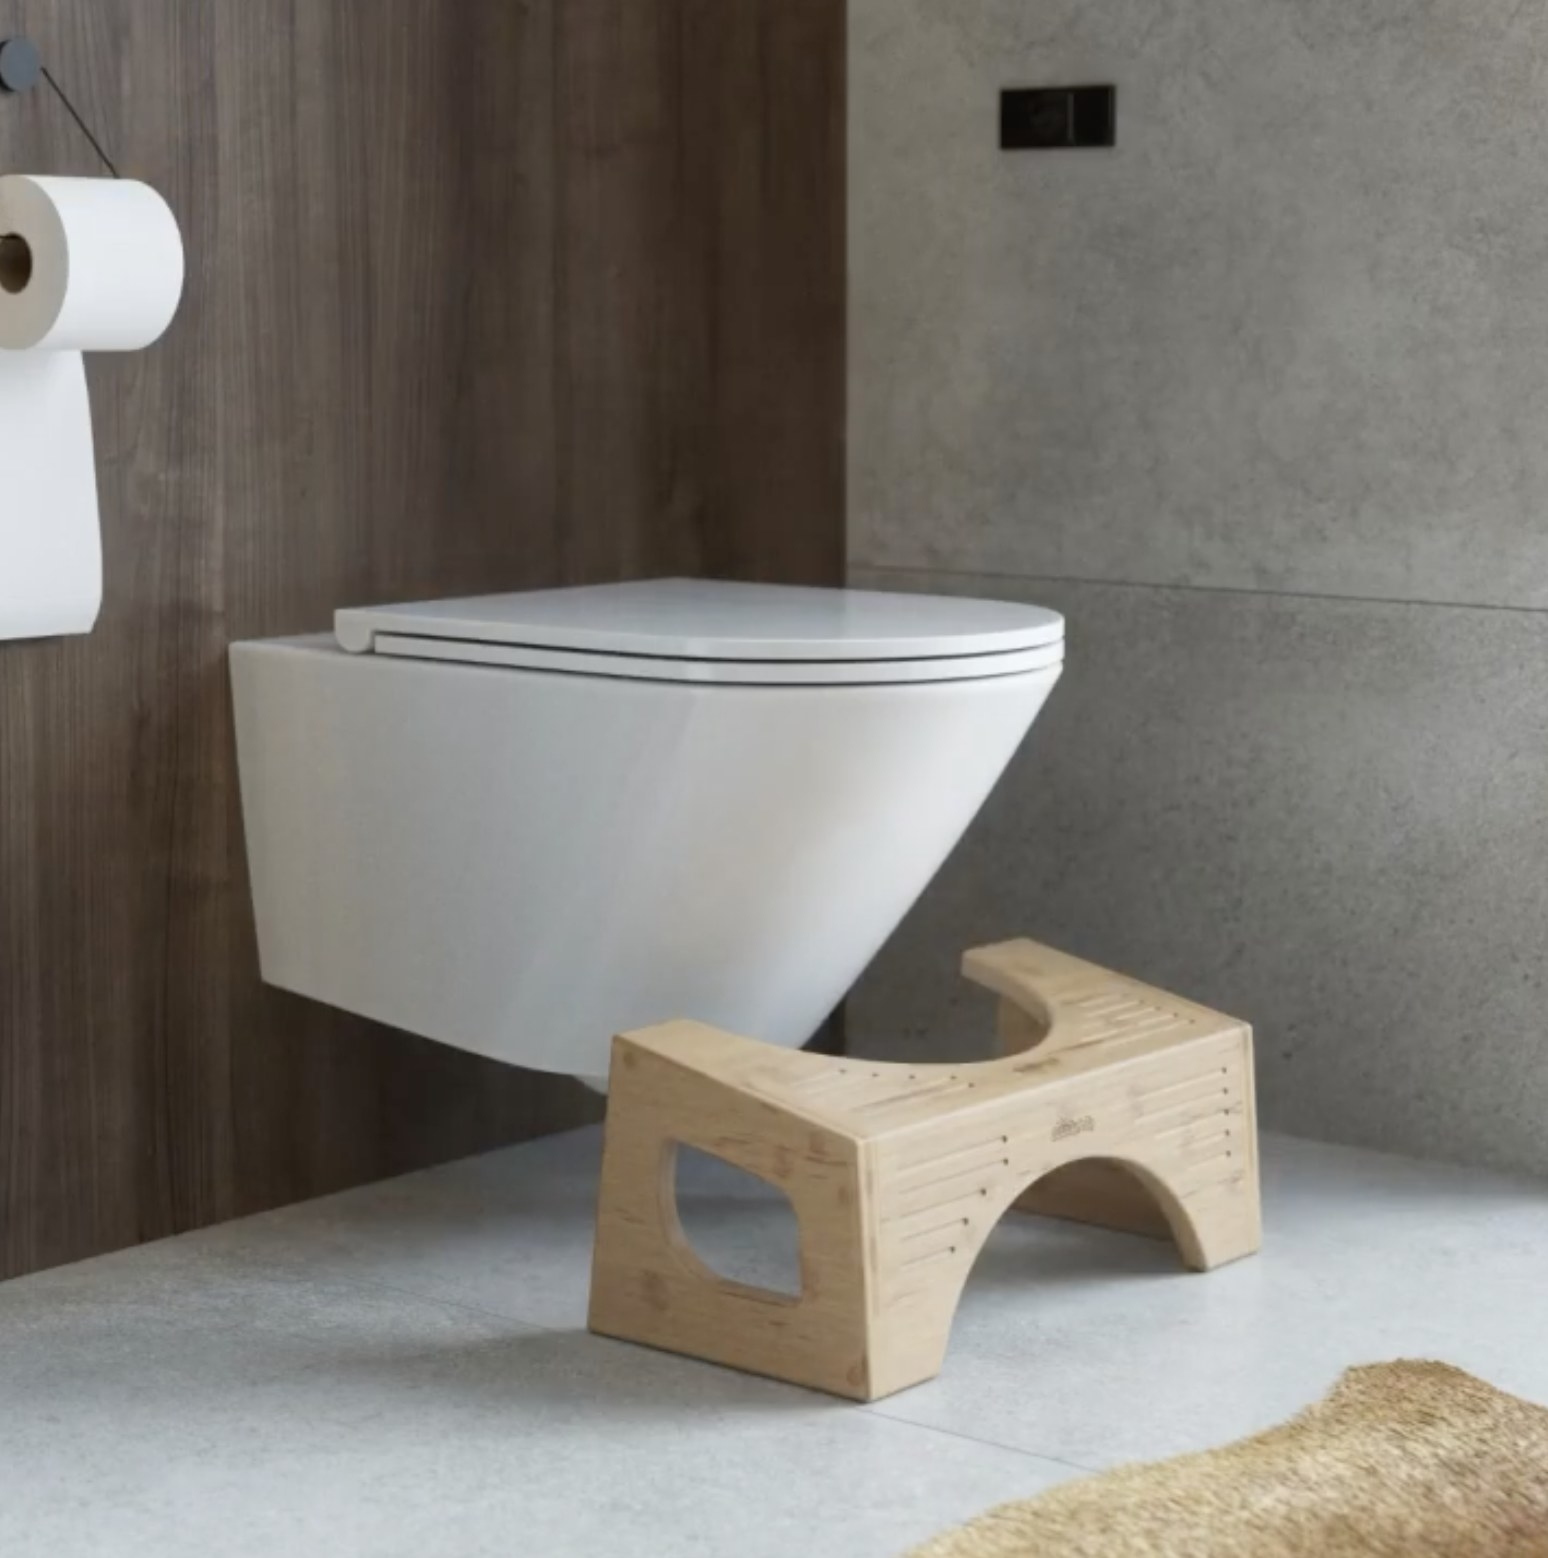 A bamboo wood-colored step stool positioned in front of a toilet